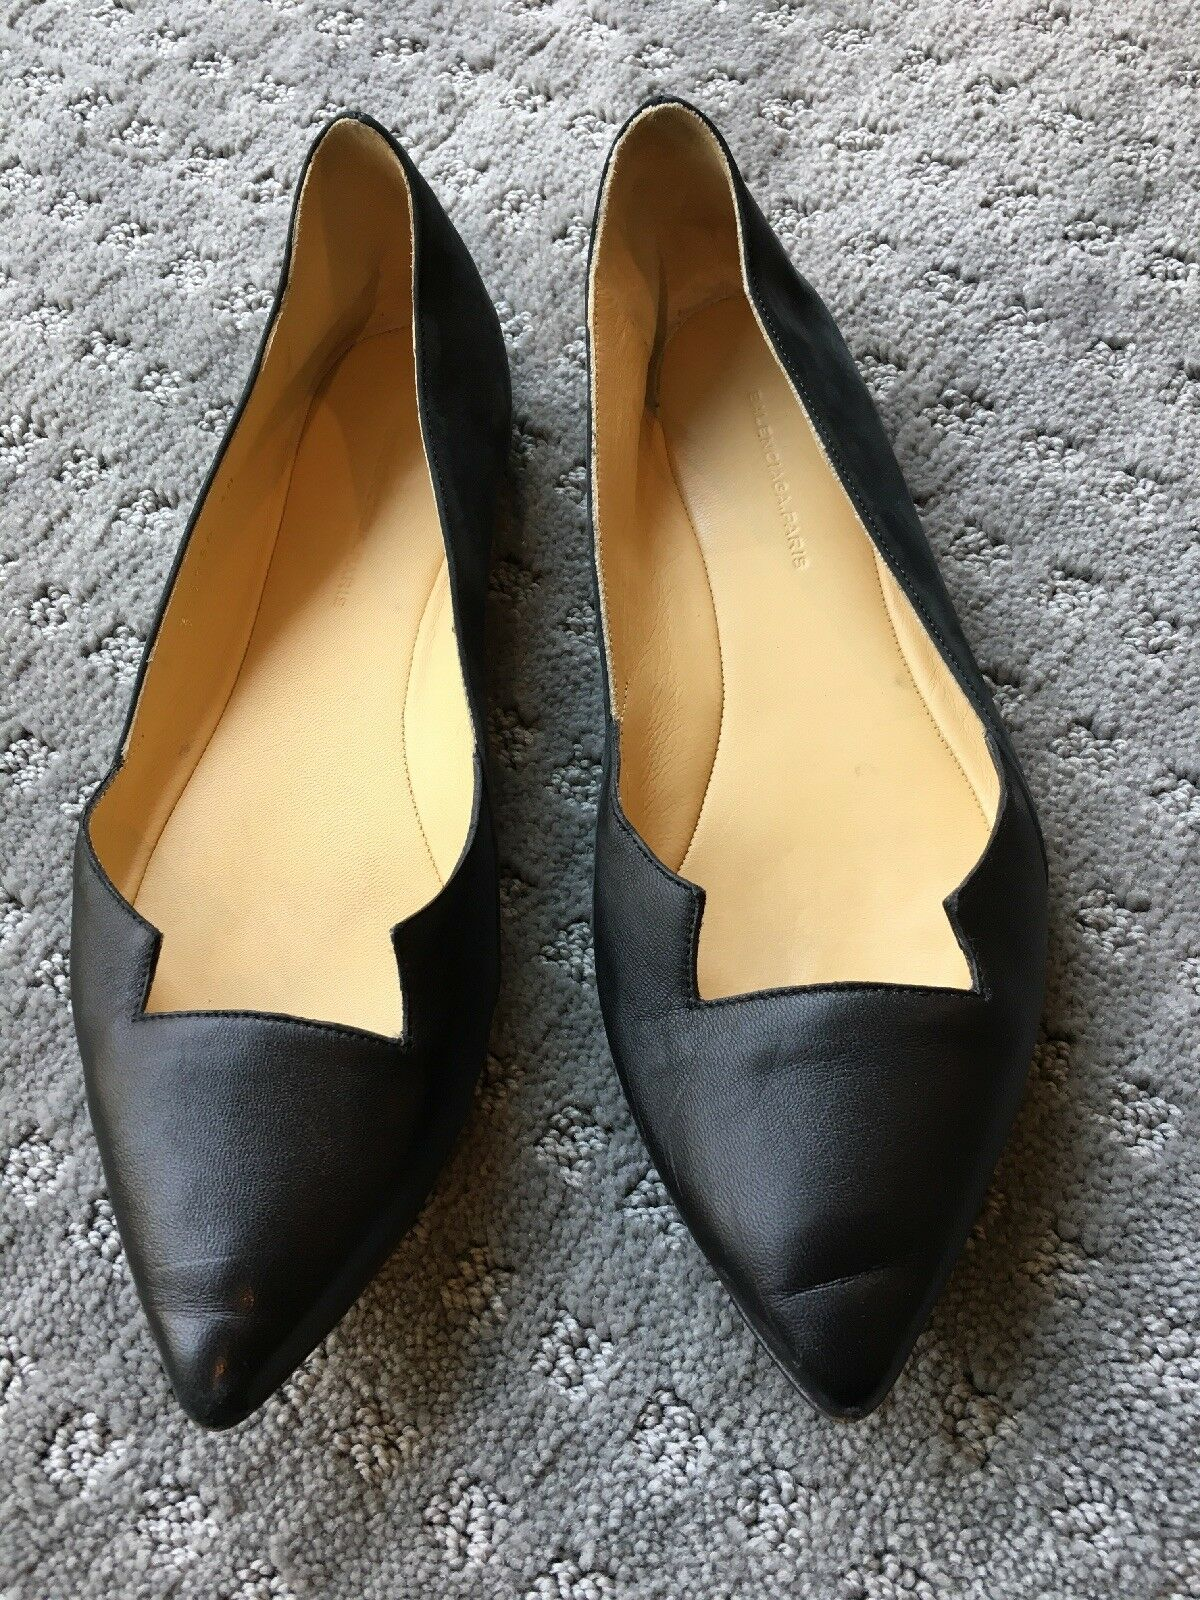 Balenciaga Black Leather And Suede Flat Size 38